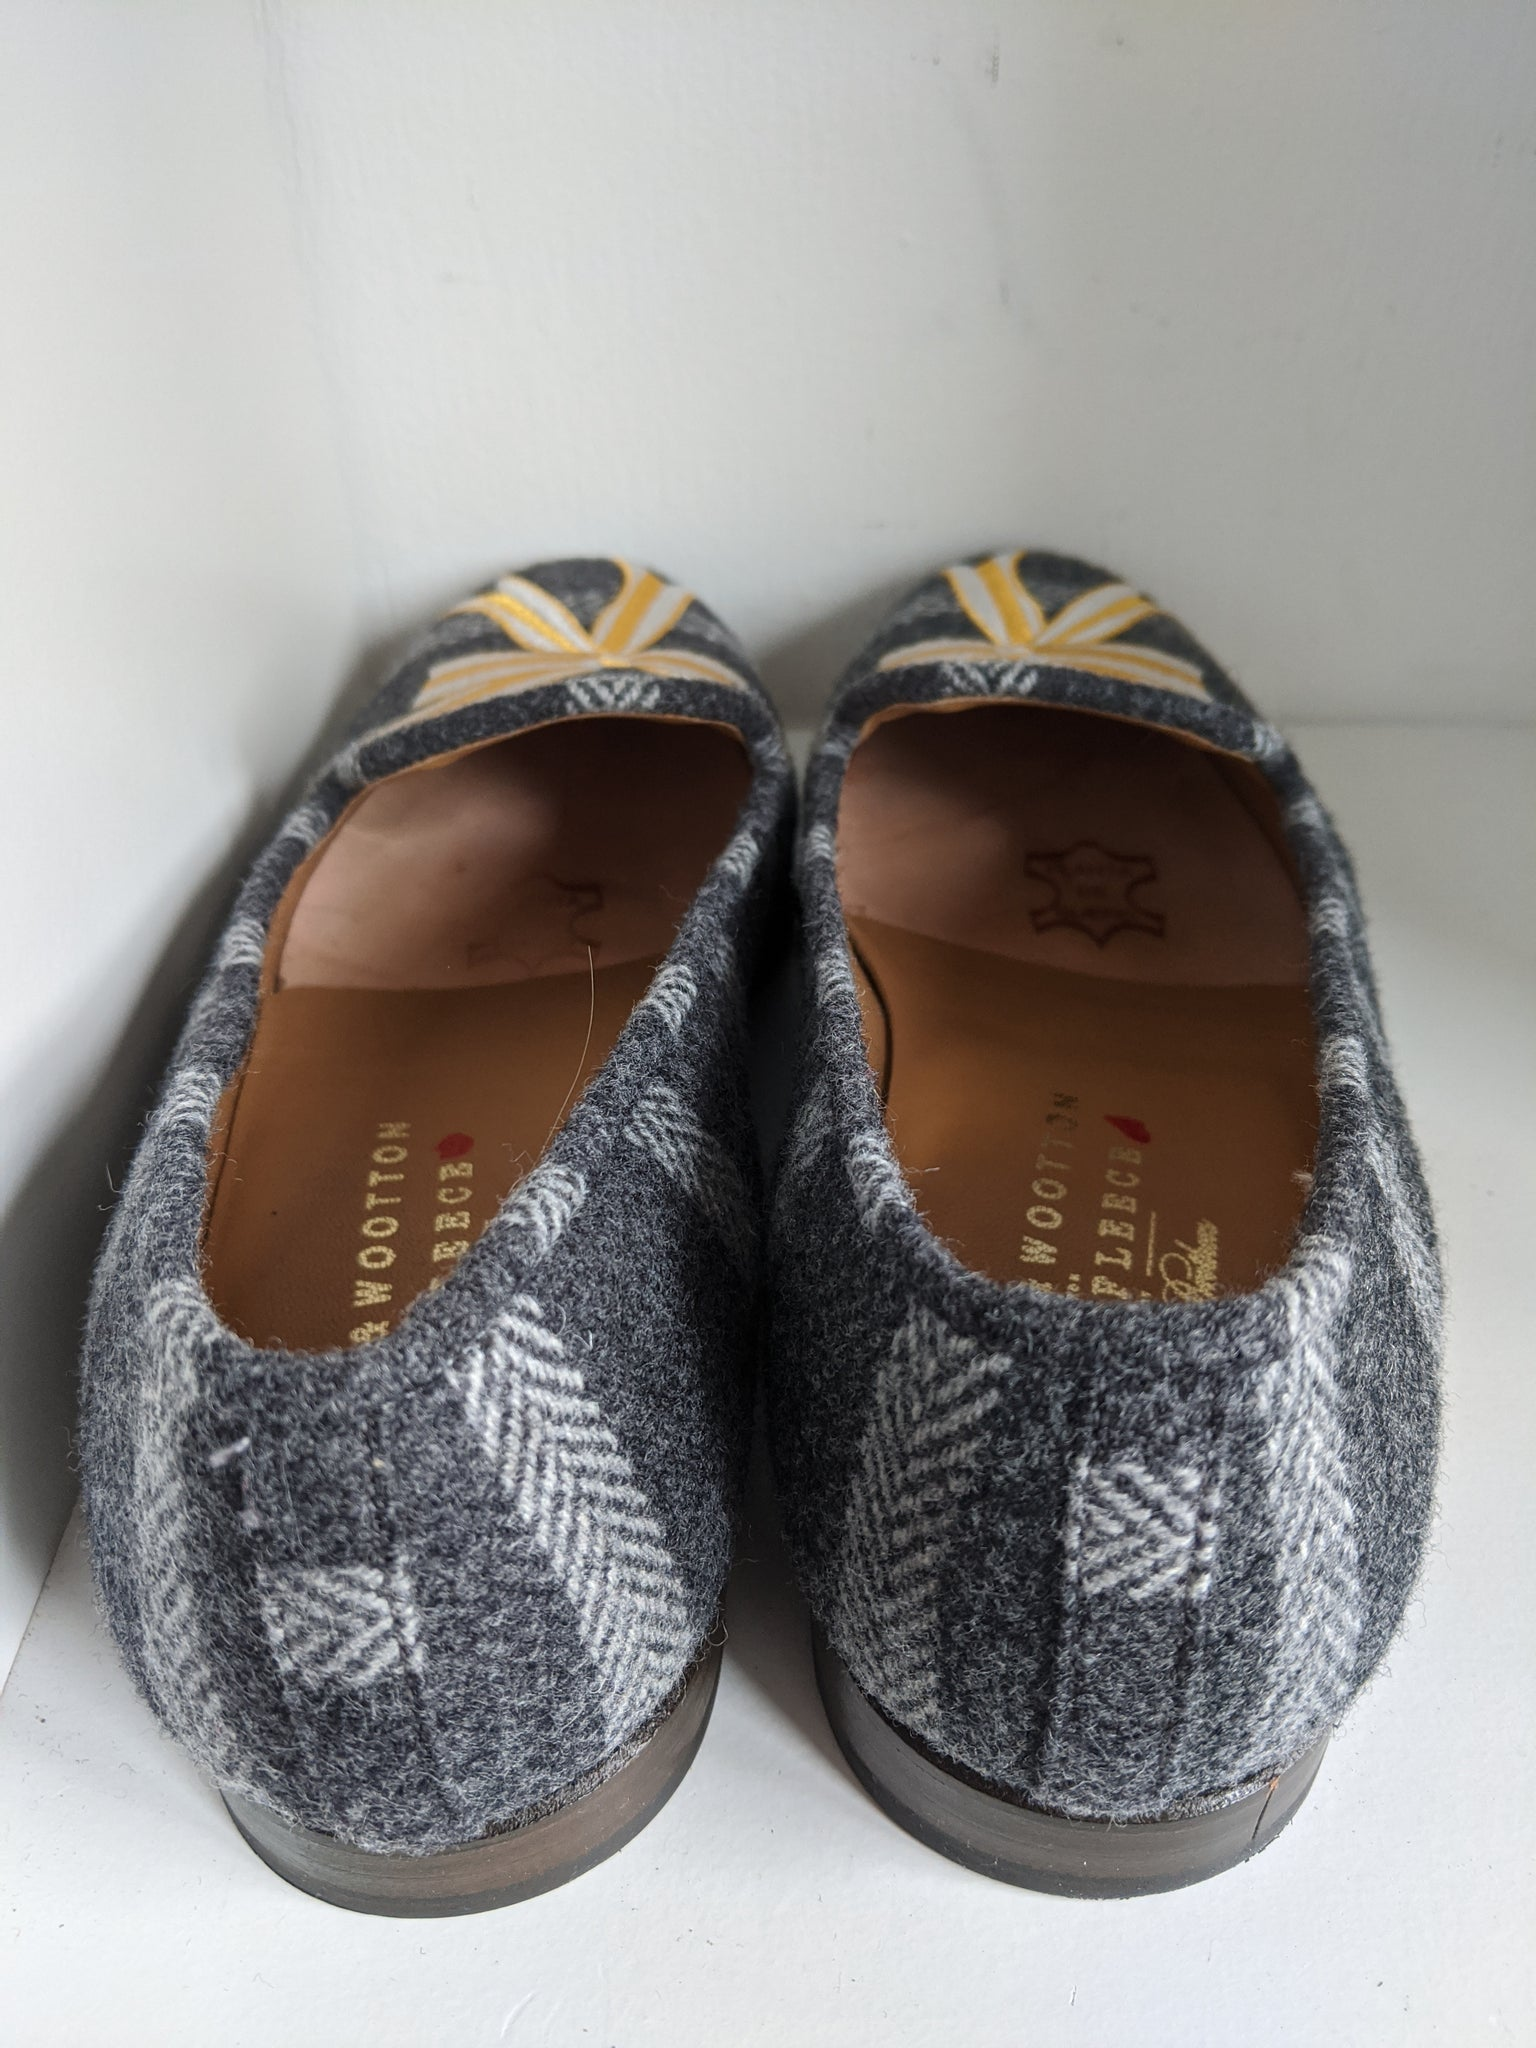 Gray & Yellow Ribbon Stubbs & Wootton Shoes, size 9